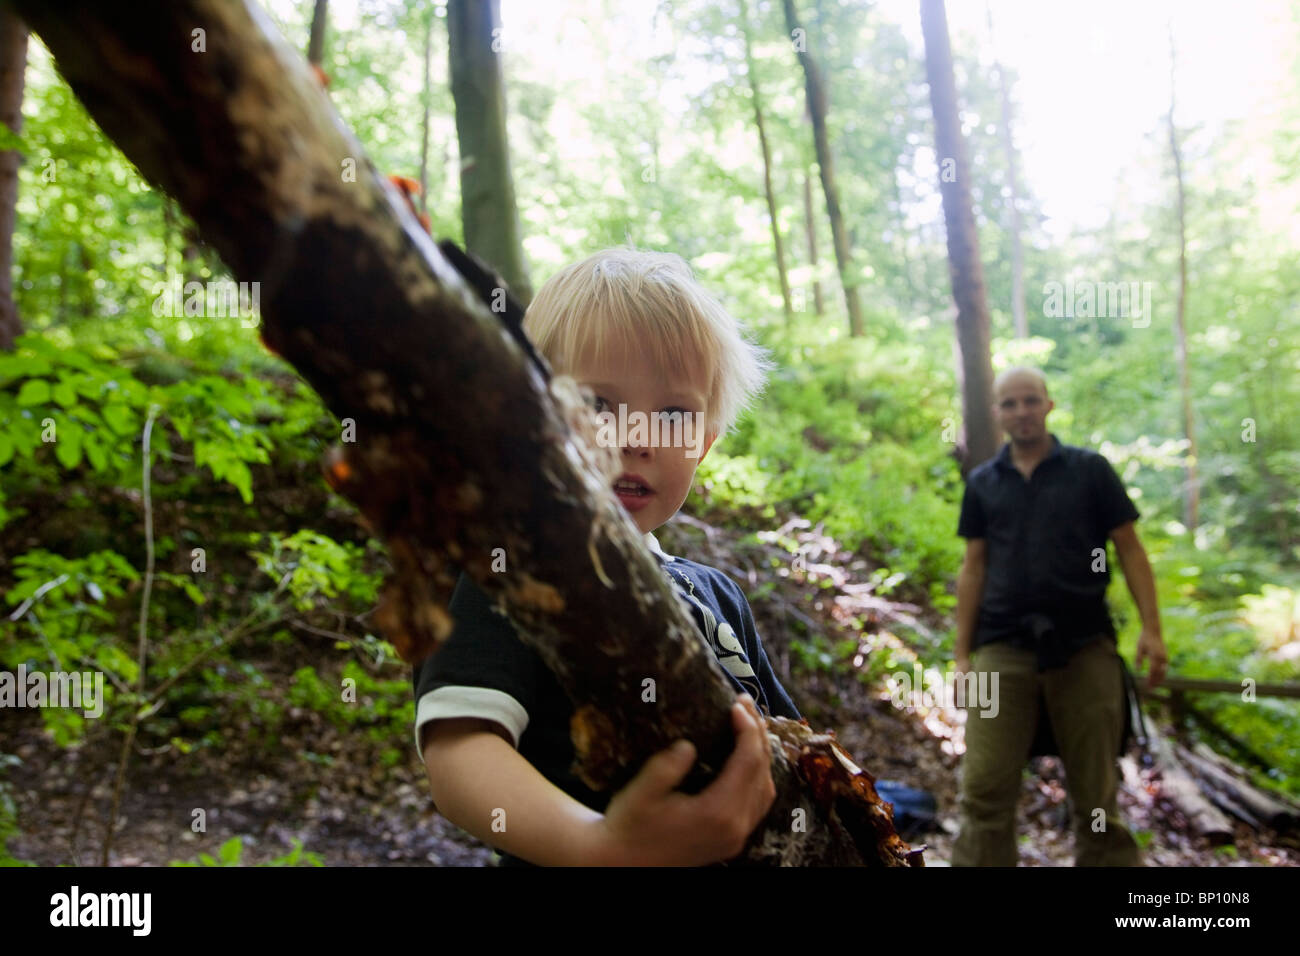 Boy carrying a limb in a forest - Stock Image